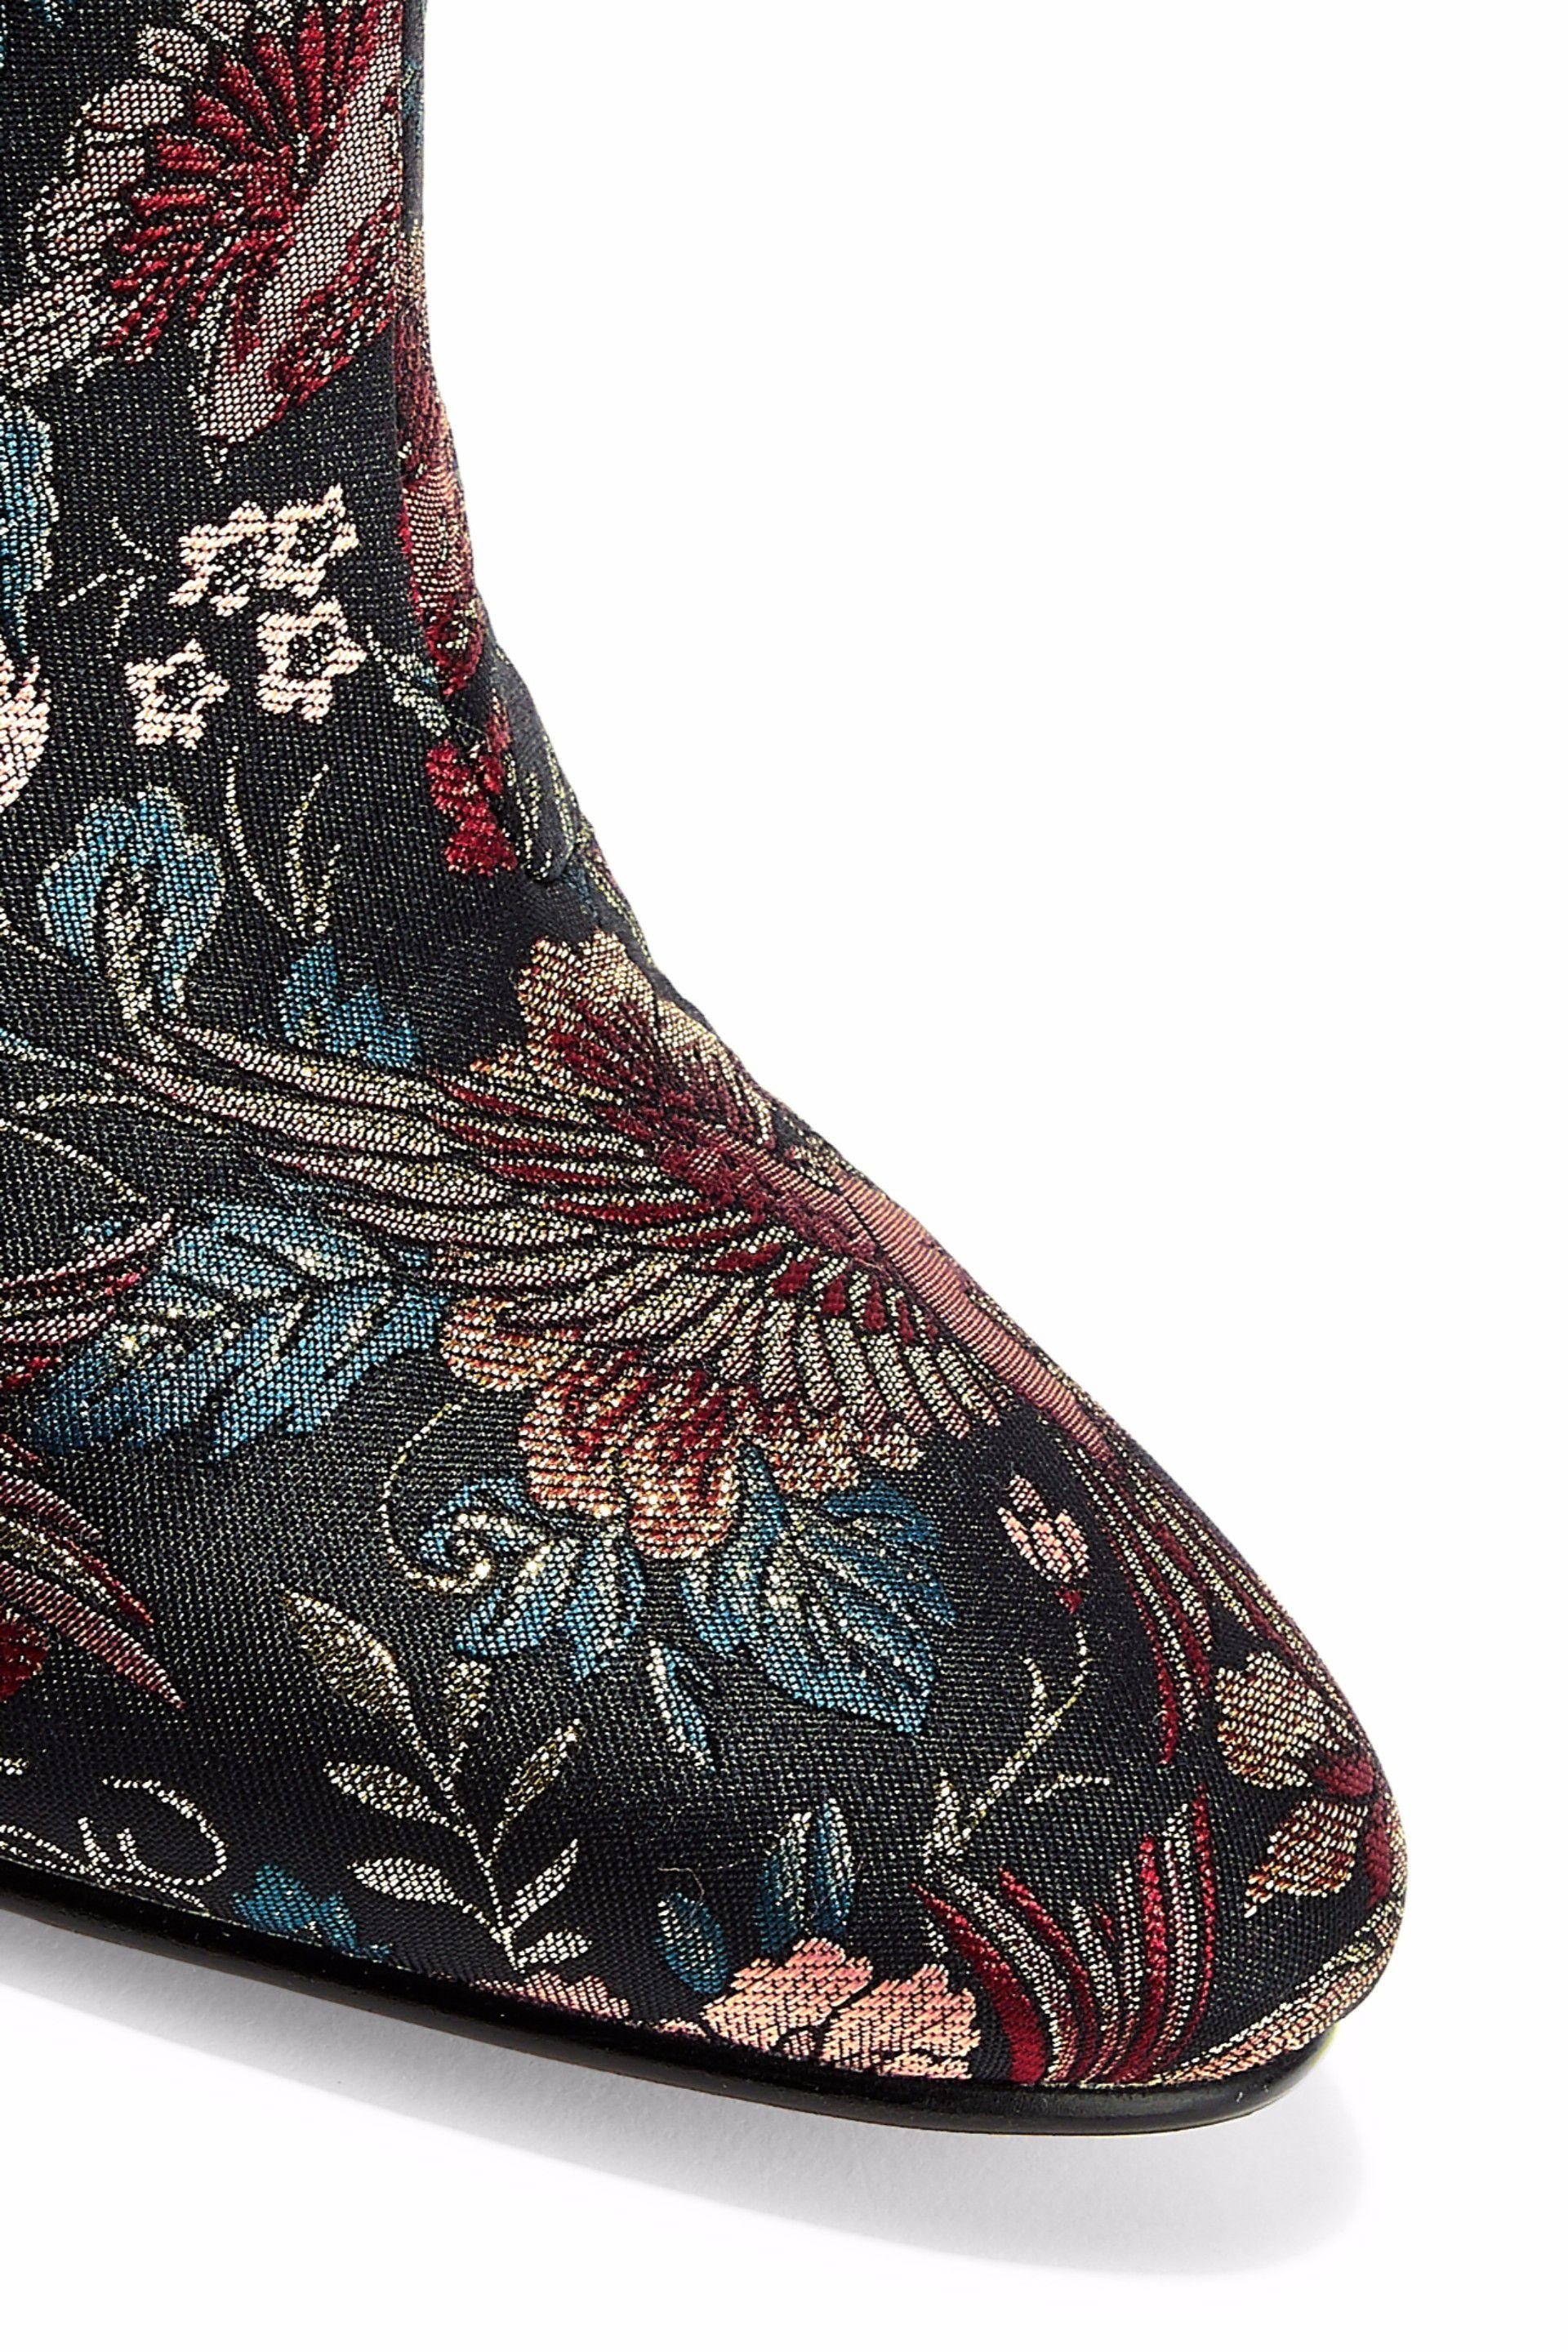 f11cb14e2 Sam Edelman - Woman Taye Metallic Jacquard Ankle Boots Multicolor - Lyst.  View fullscreen